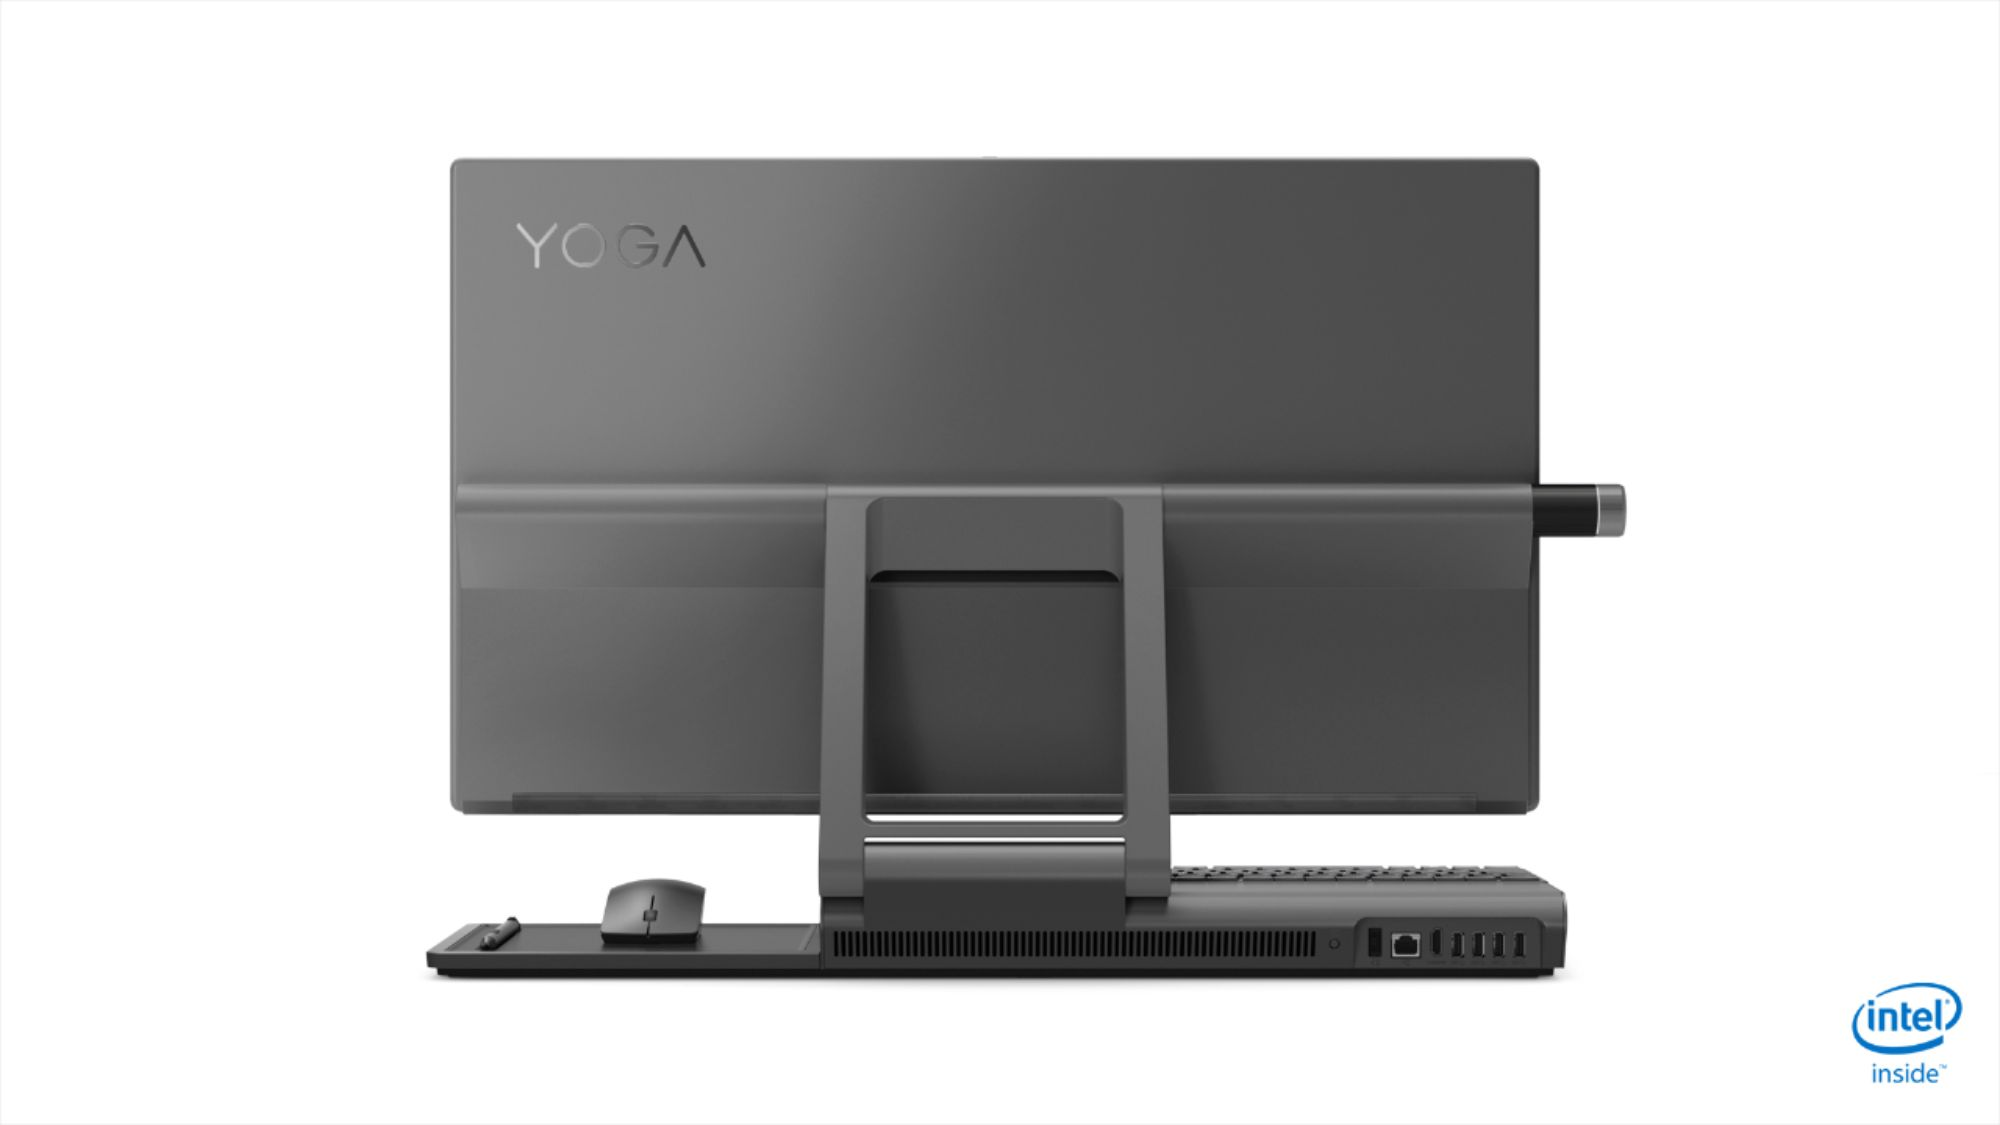 """Back Zoom. Lenovo - Yoga A940 27"""" Touch-Screen All-In-One - Intel Core i7 - 16GB Memory - 1TB Hard Drive + 256GB Solid State Drive - Grey."""